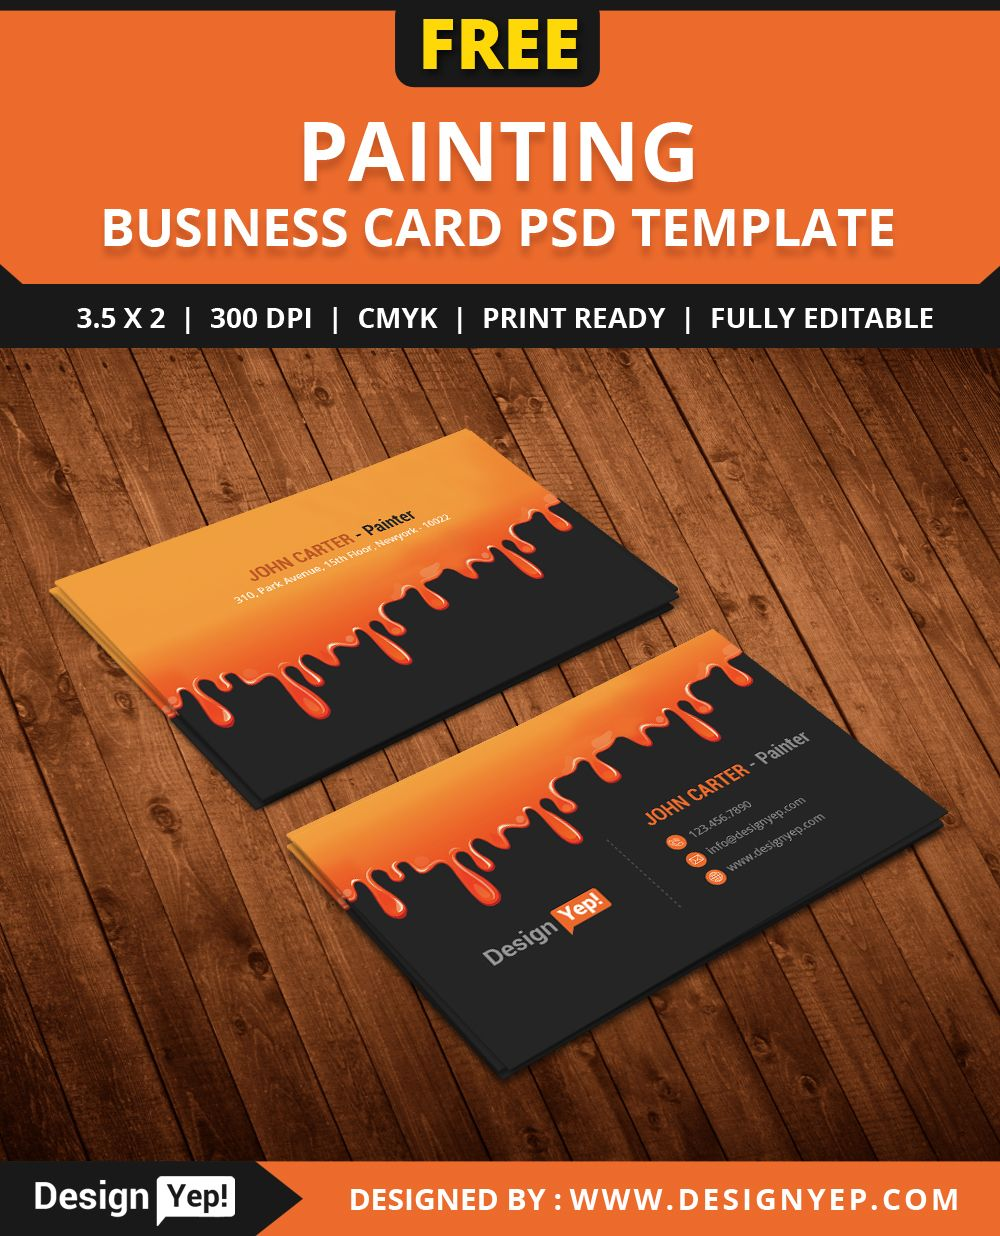 FreePaintingBusinessCardPSDTemplate Free Business Card - Painter business card template